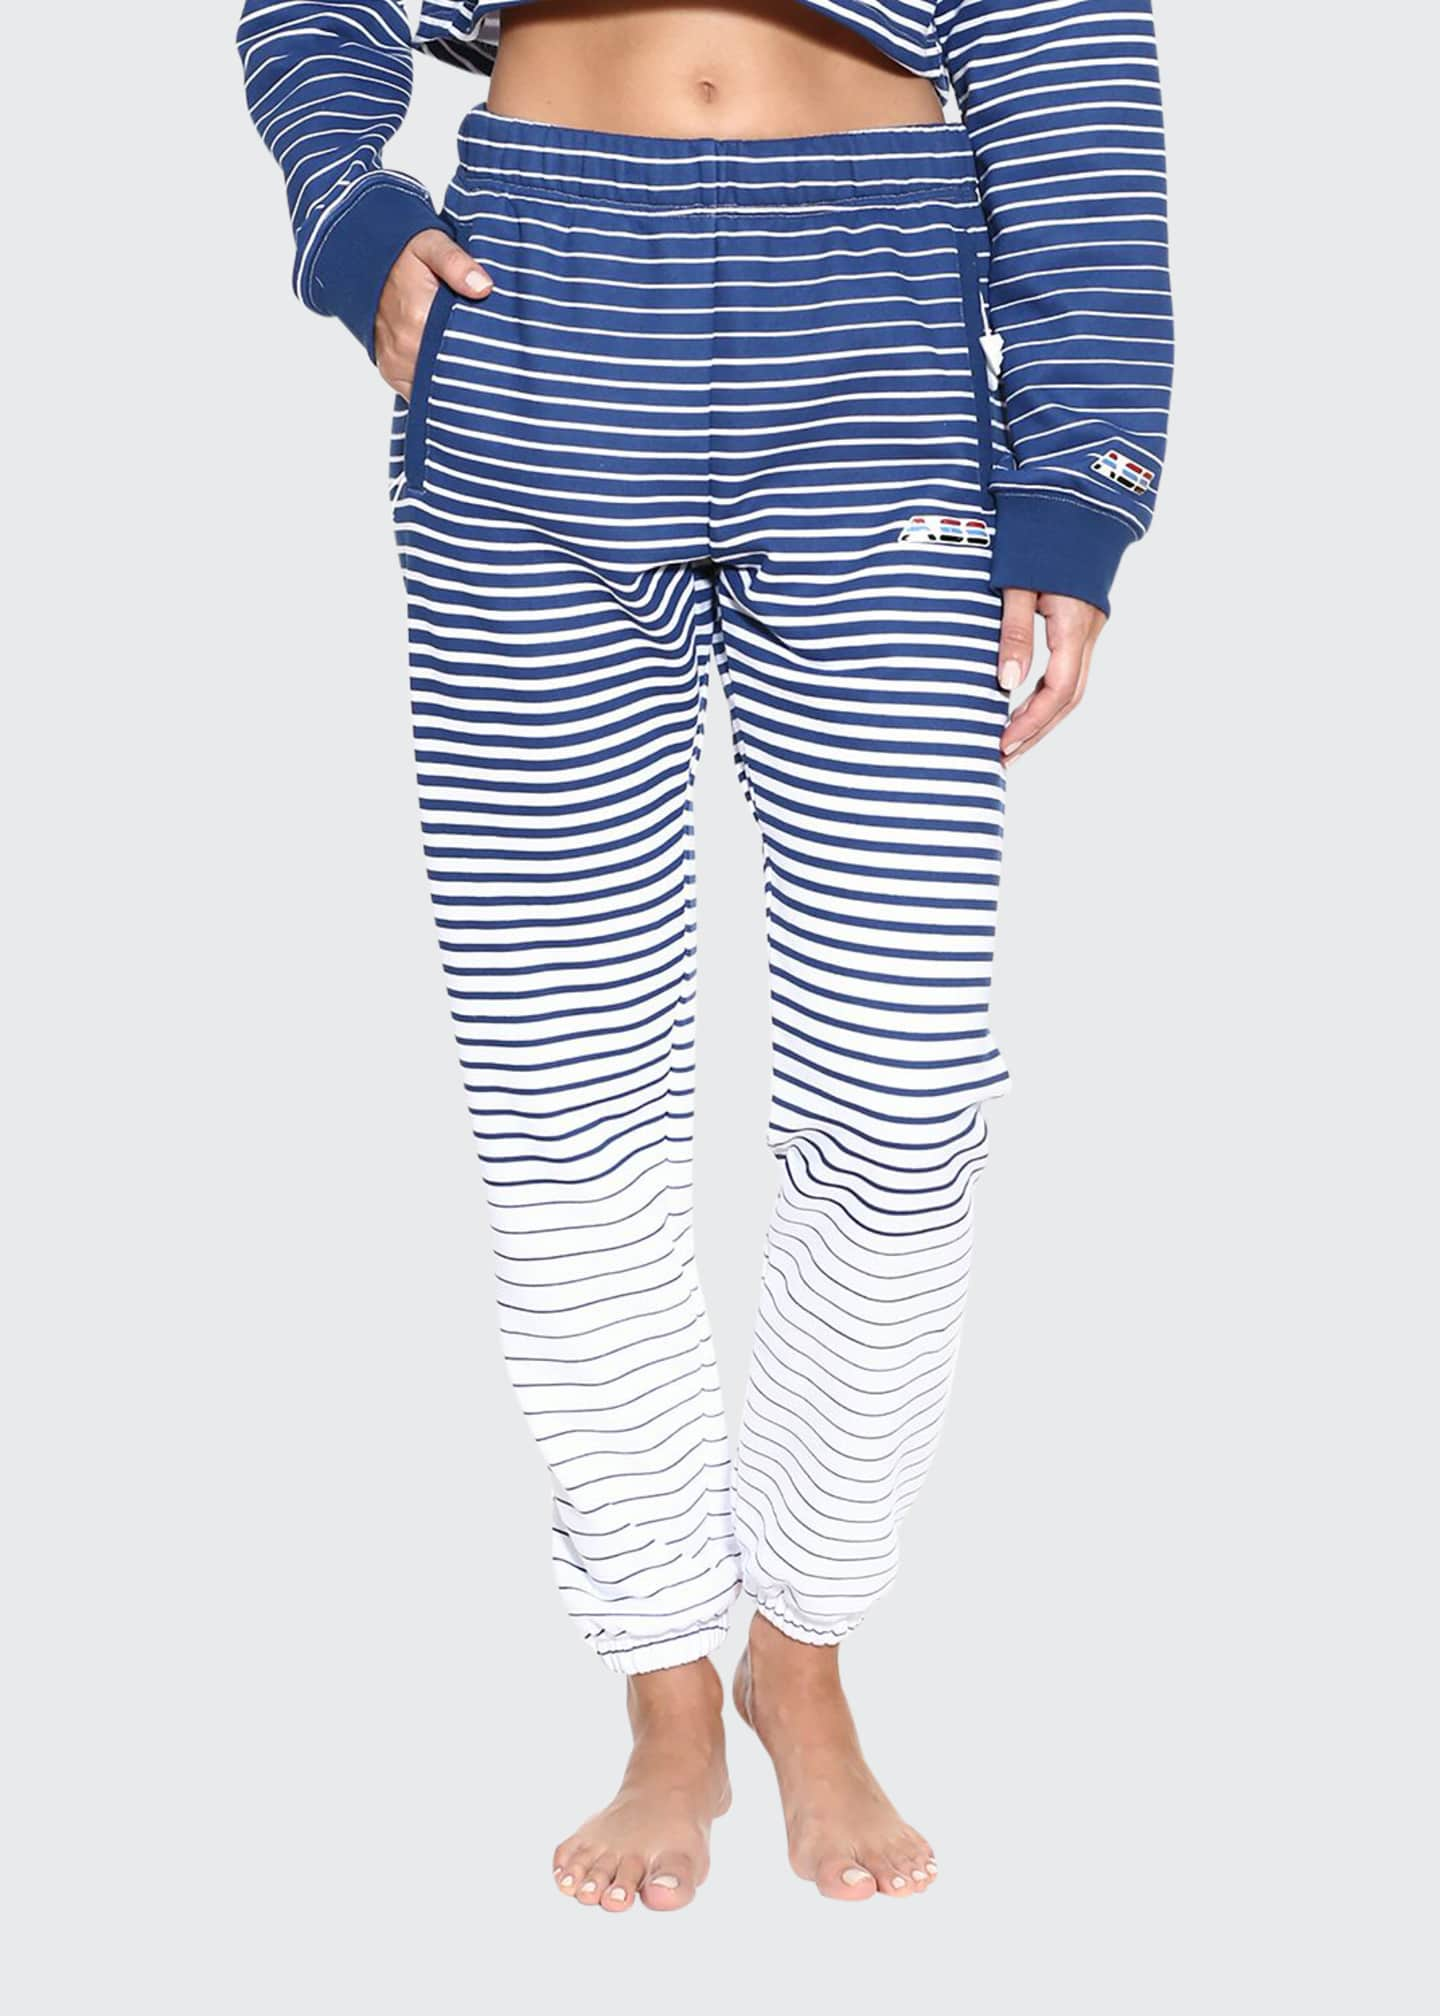 Adam Selman Sport Striped Unisex Logo Sweatpants